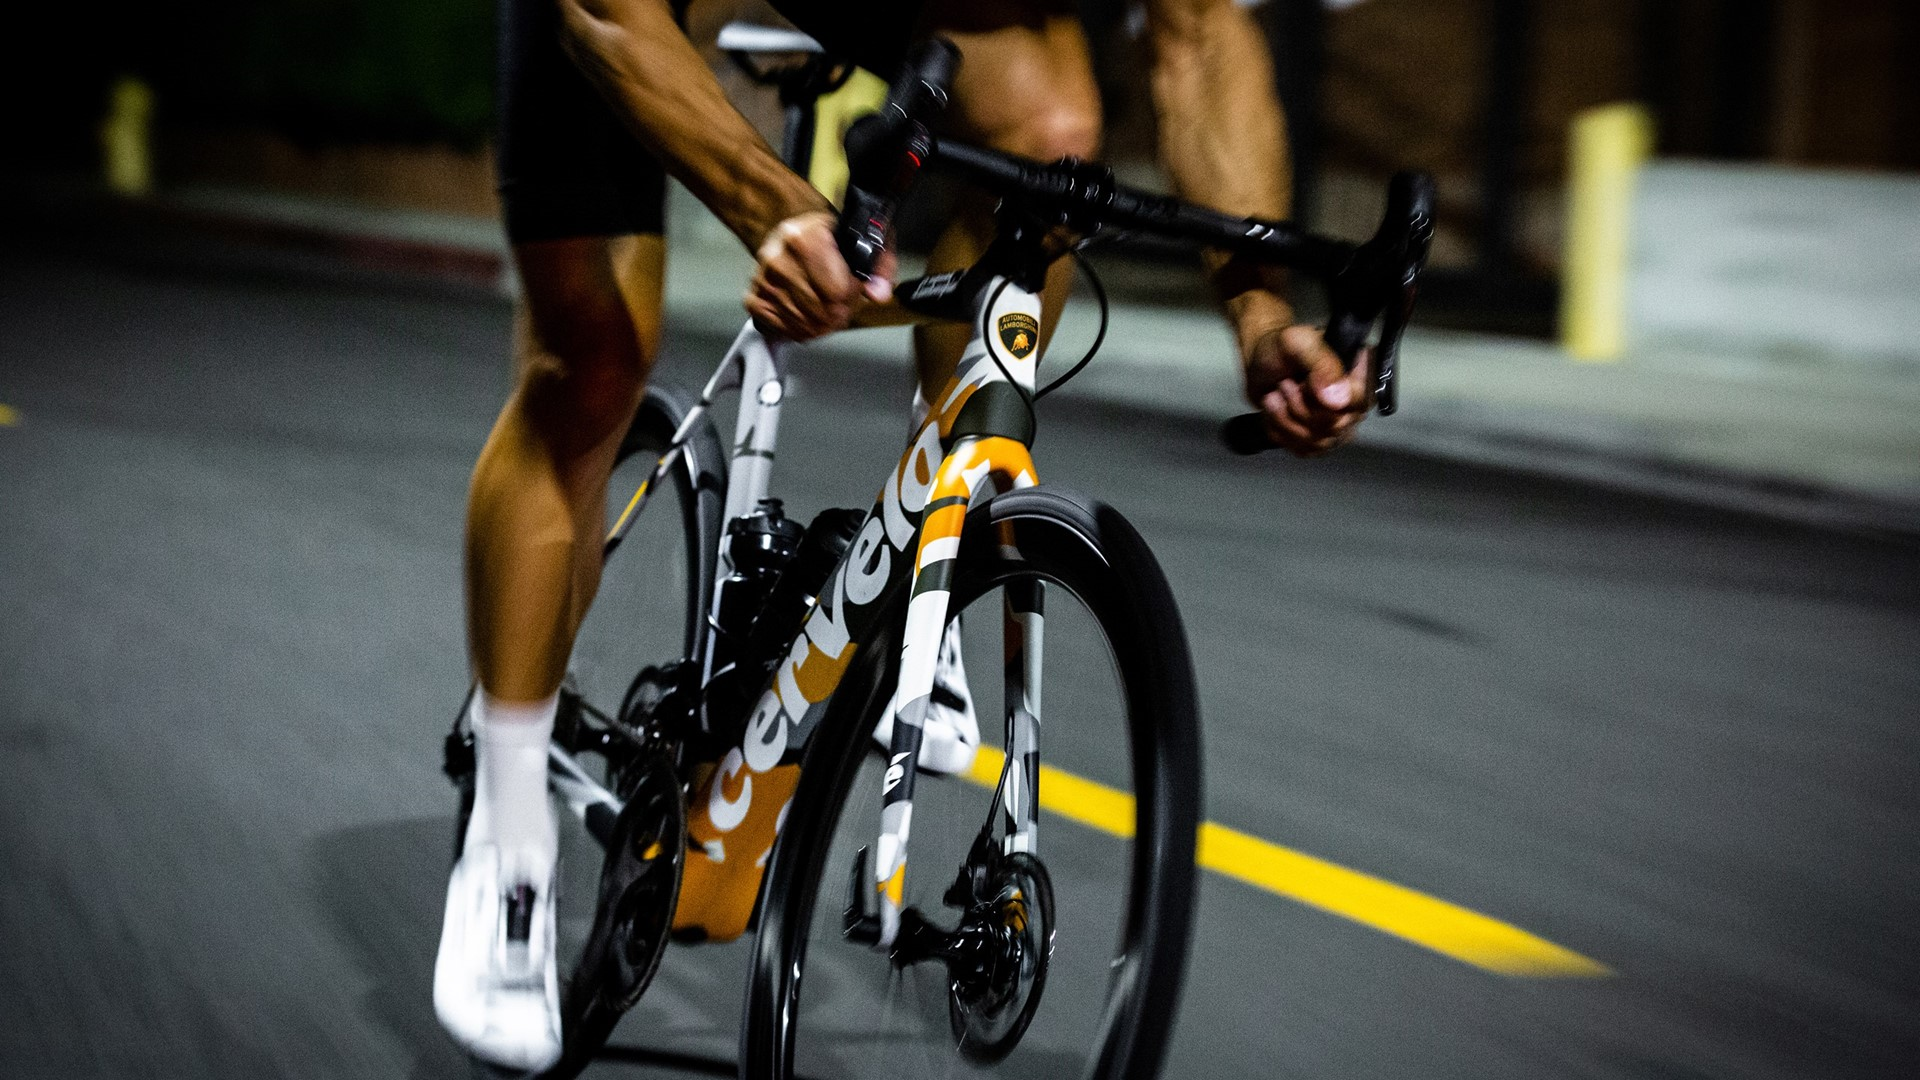 Automobili Lamborghini and Cervélo present the new R5 bicycle in a limited edition - Image 5